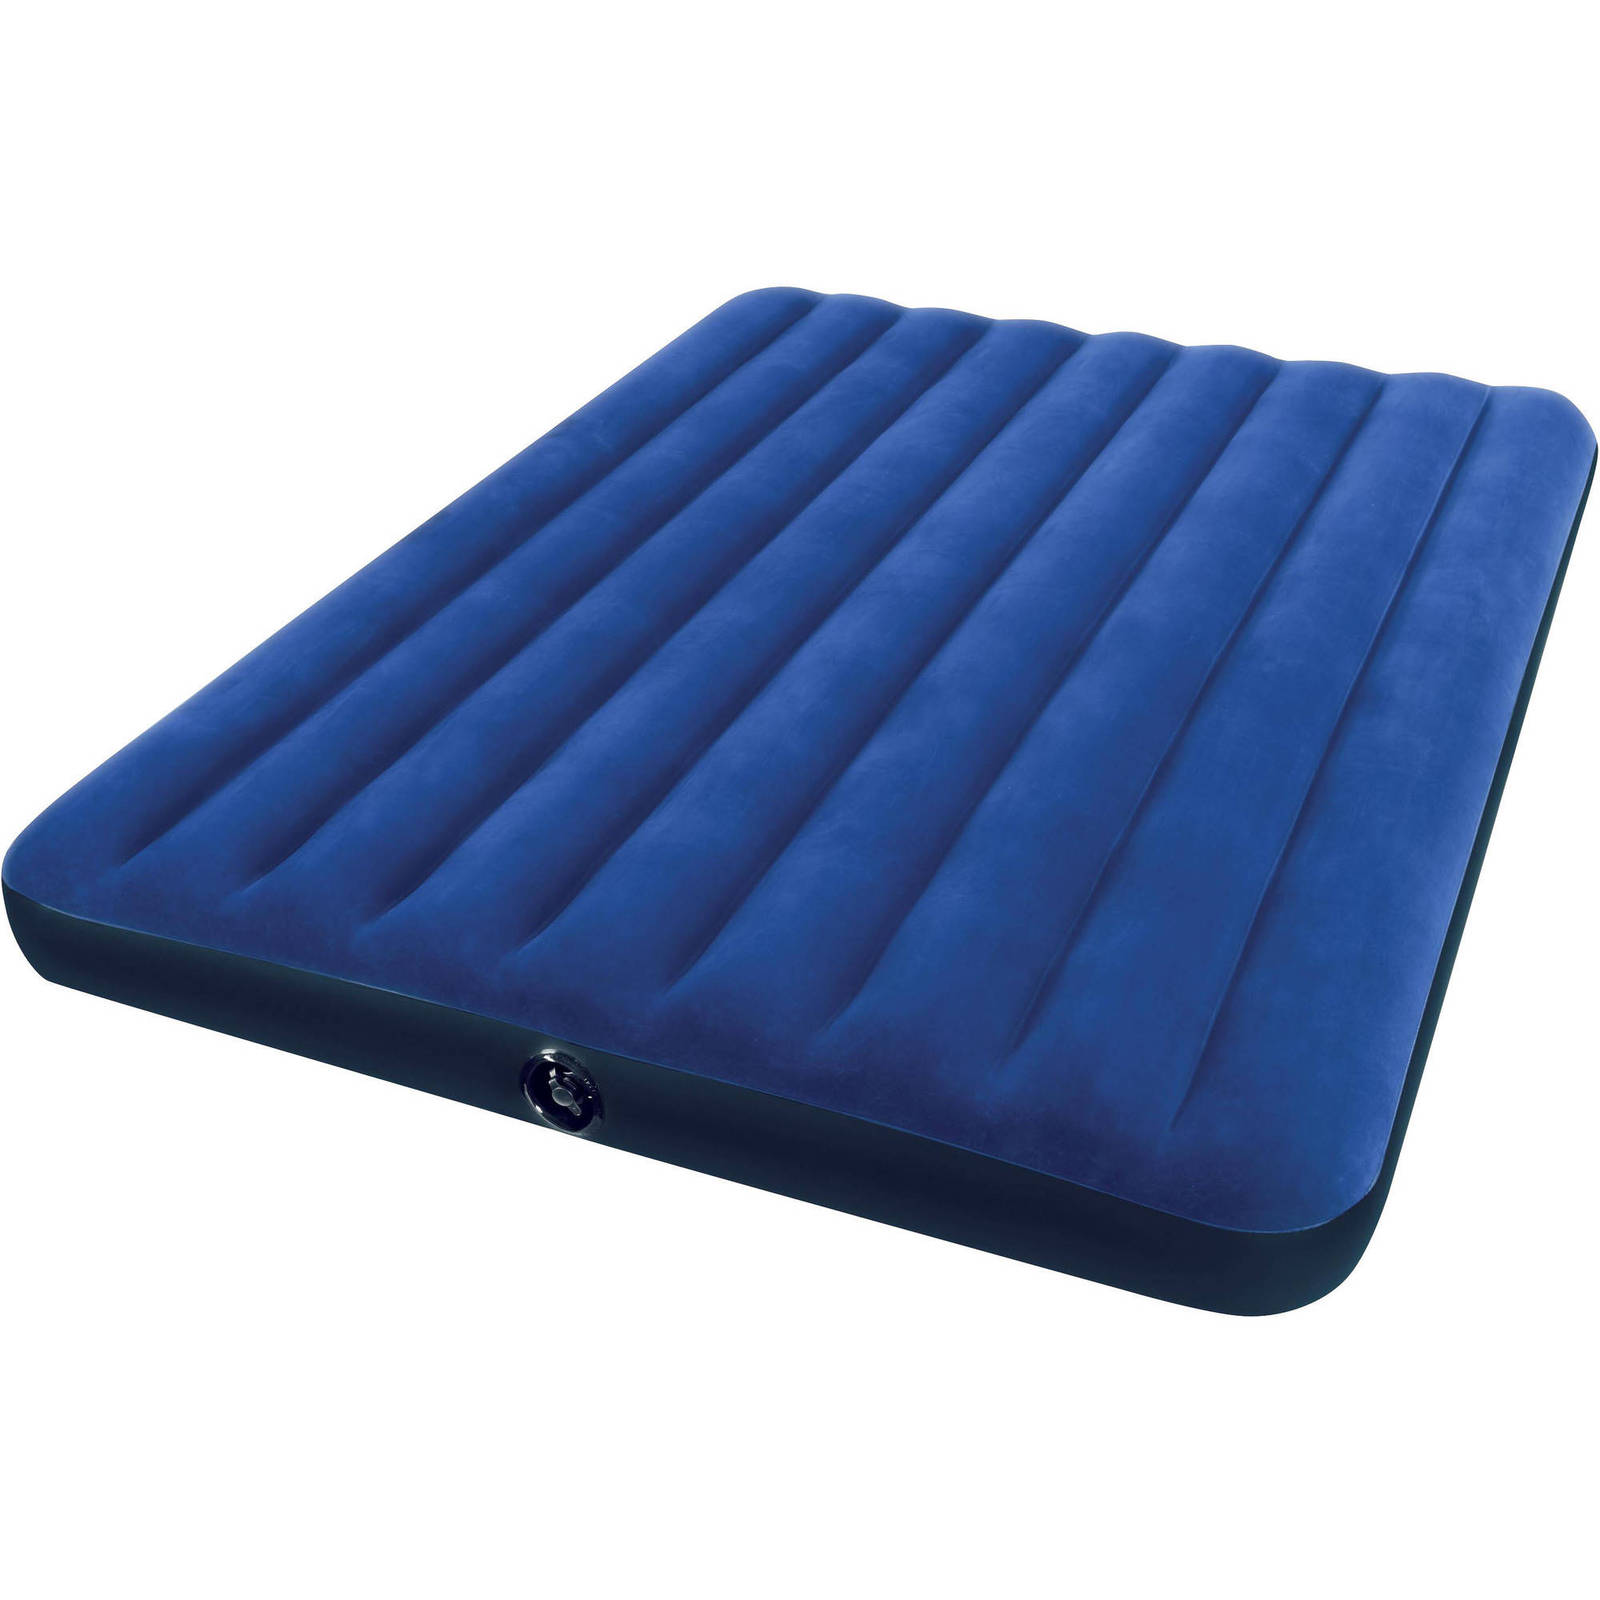 Camping Bed Inflatable Air Mattress Sleeping Travel Airbed